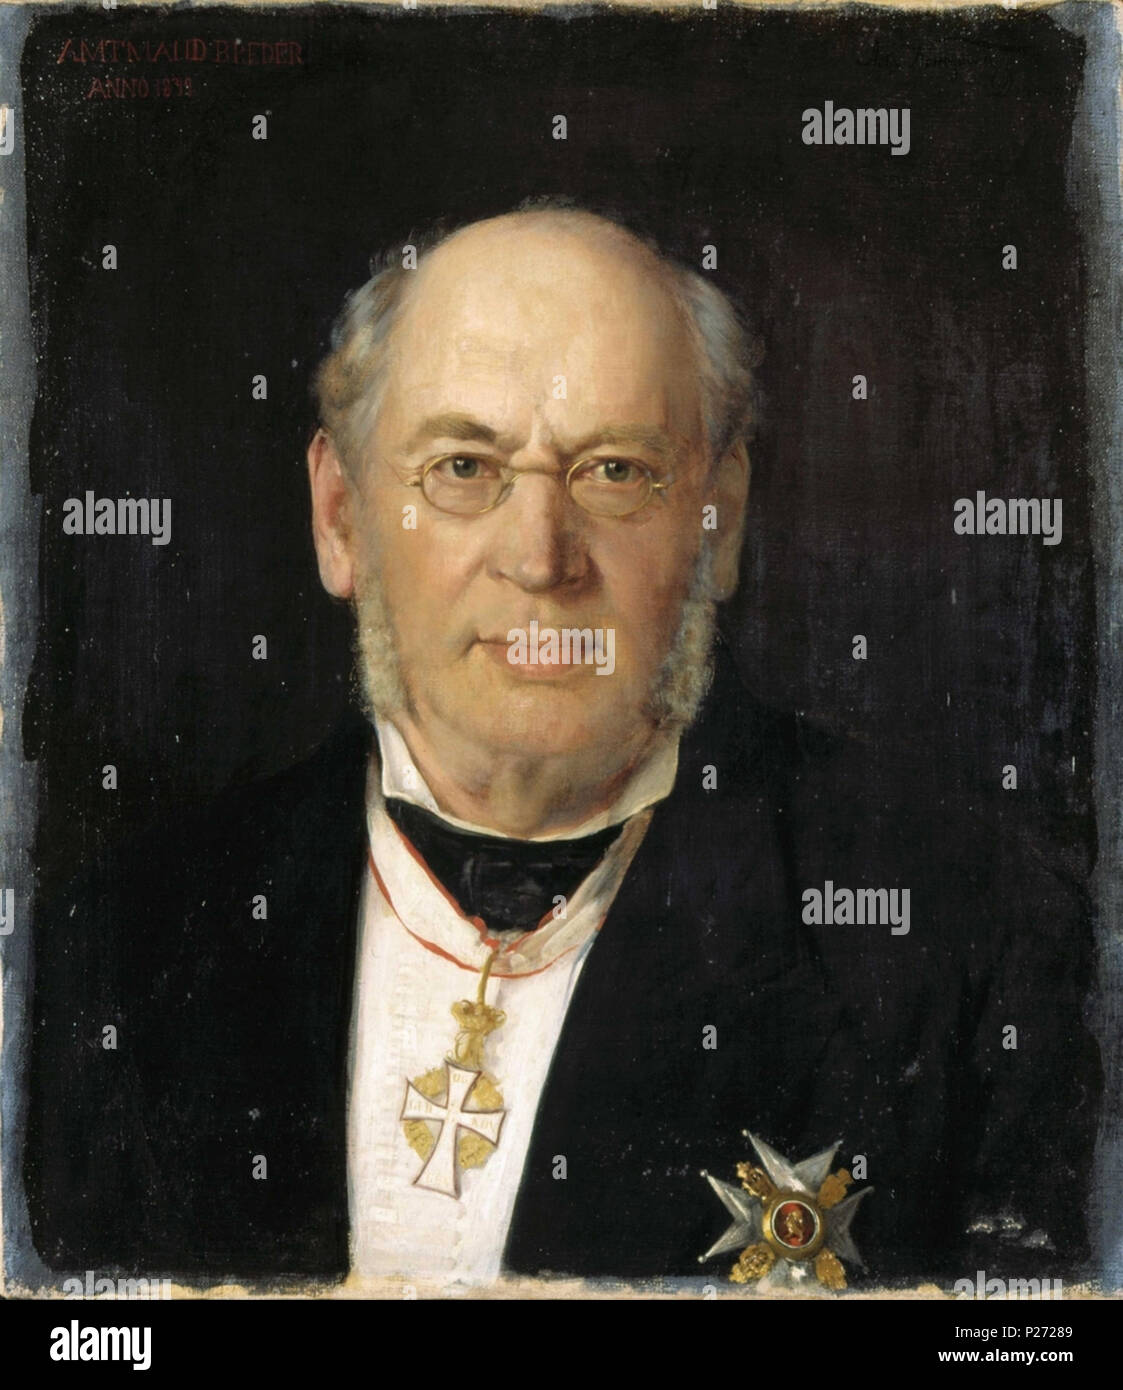 . Norwegian: Paul Peter Vilhelm Breder (født 1816 i Halden, død 1890) er en tidligere norsk embedsmann, jurist og politiker. Dannebrogsordenen om halsen og St. Olavsordenens ridderkors på brystet. English: Portrait of Paul Peter Vilhelm Breder (1816-1890), Norwegian civil servant and member of Stortinget with the Order of St. Olav and the Order of the Dannebrog. . 1879.    Asta Nørregaard  (1853–1933)     Alternative names Asta Elise Jacobine Nørregaard  Description Norwegian painter  Date of birth/death 13 August 1853 23 March 1933  Location of birth/death Christiania (Oslo) Oslo  Work locati - Stock Image